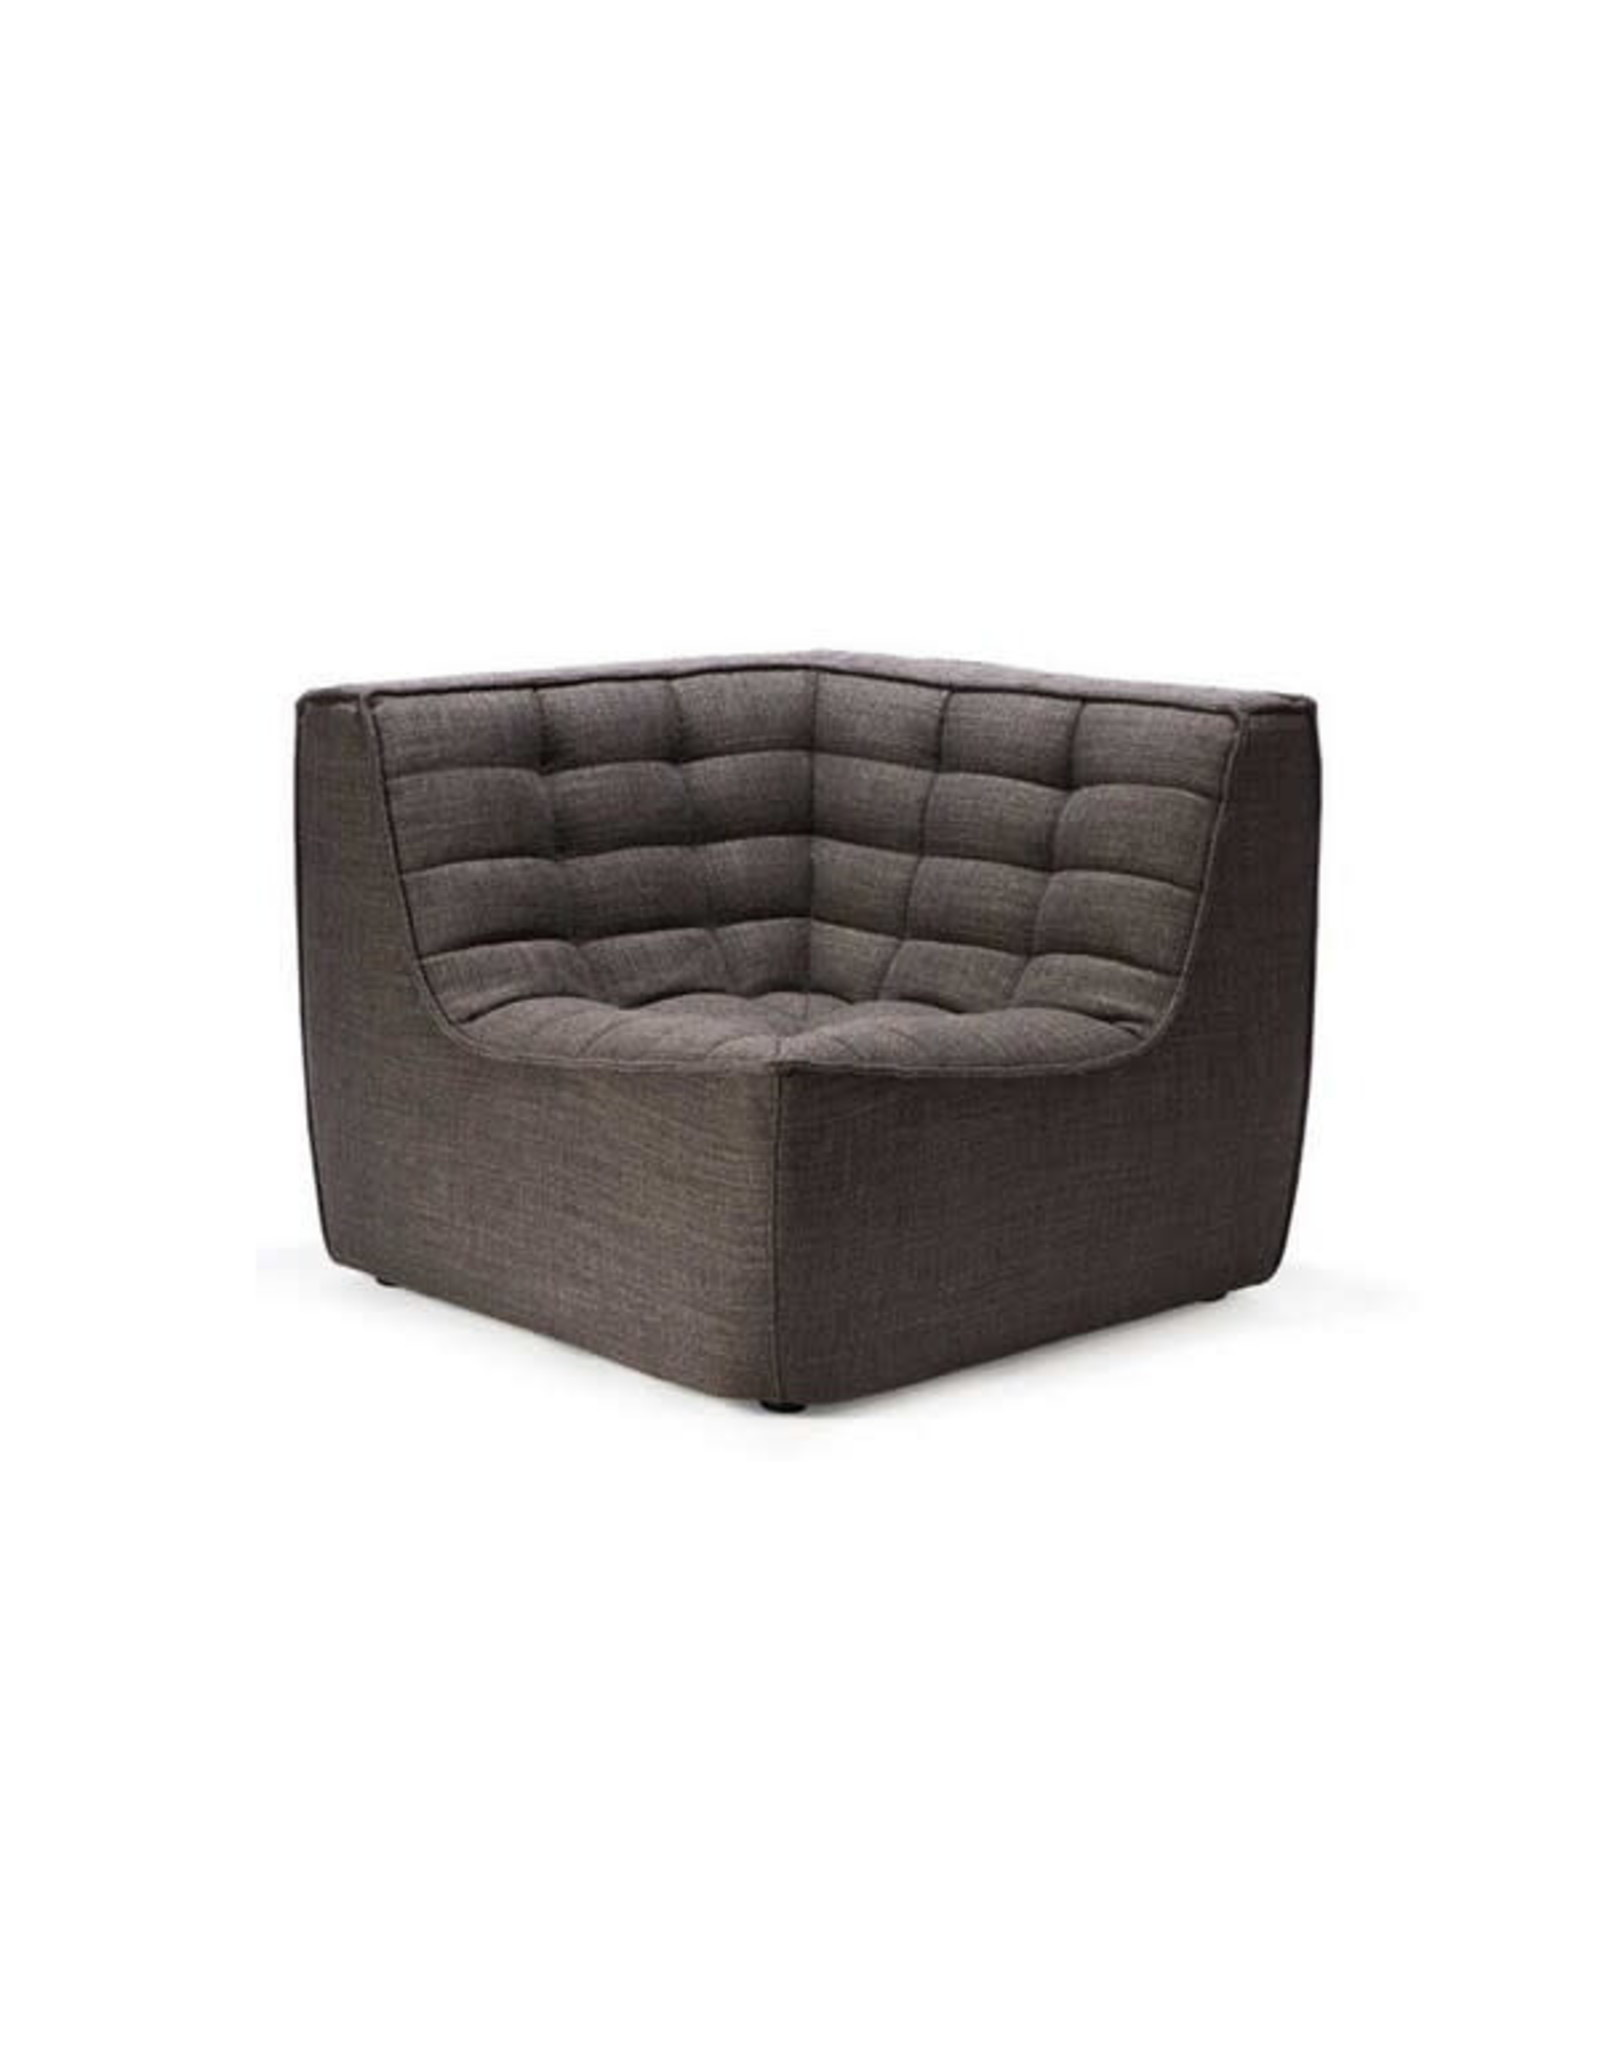 N701 Sofa Corner - Dark Grey